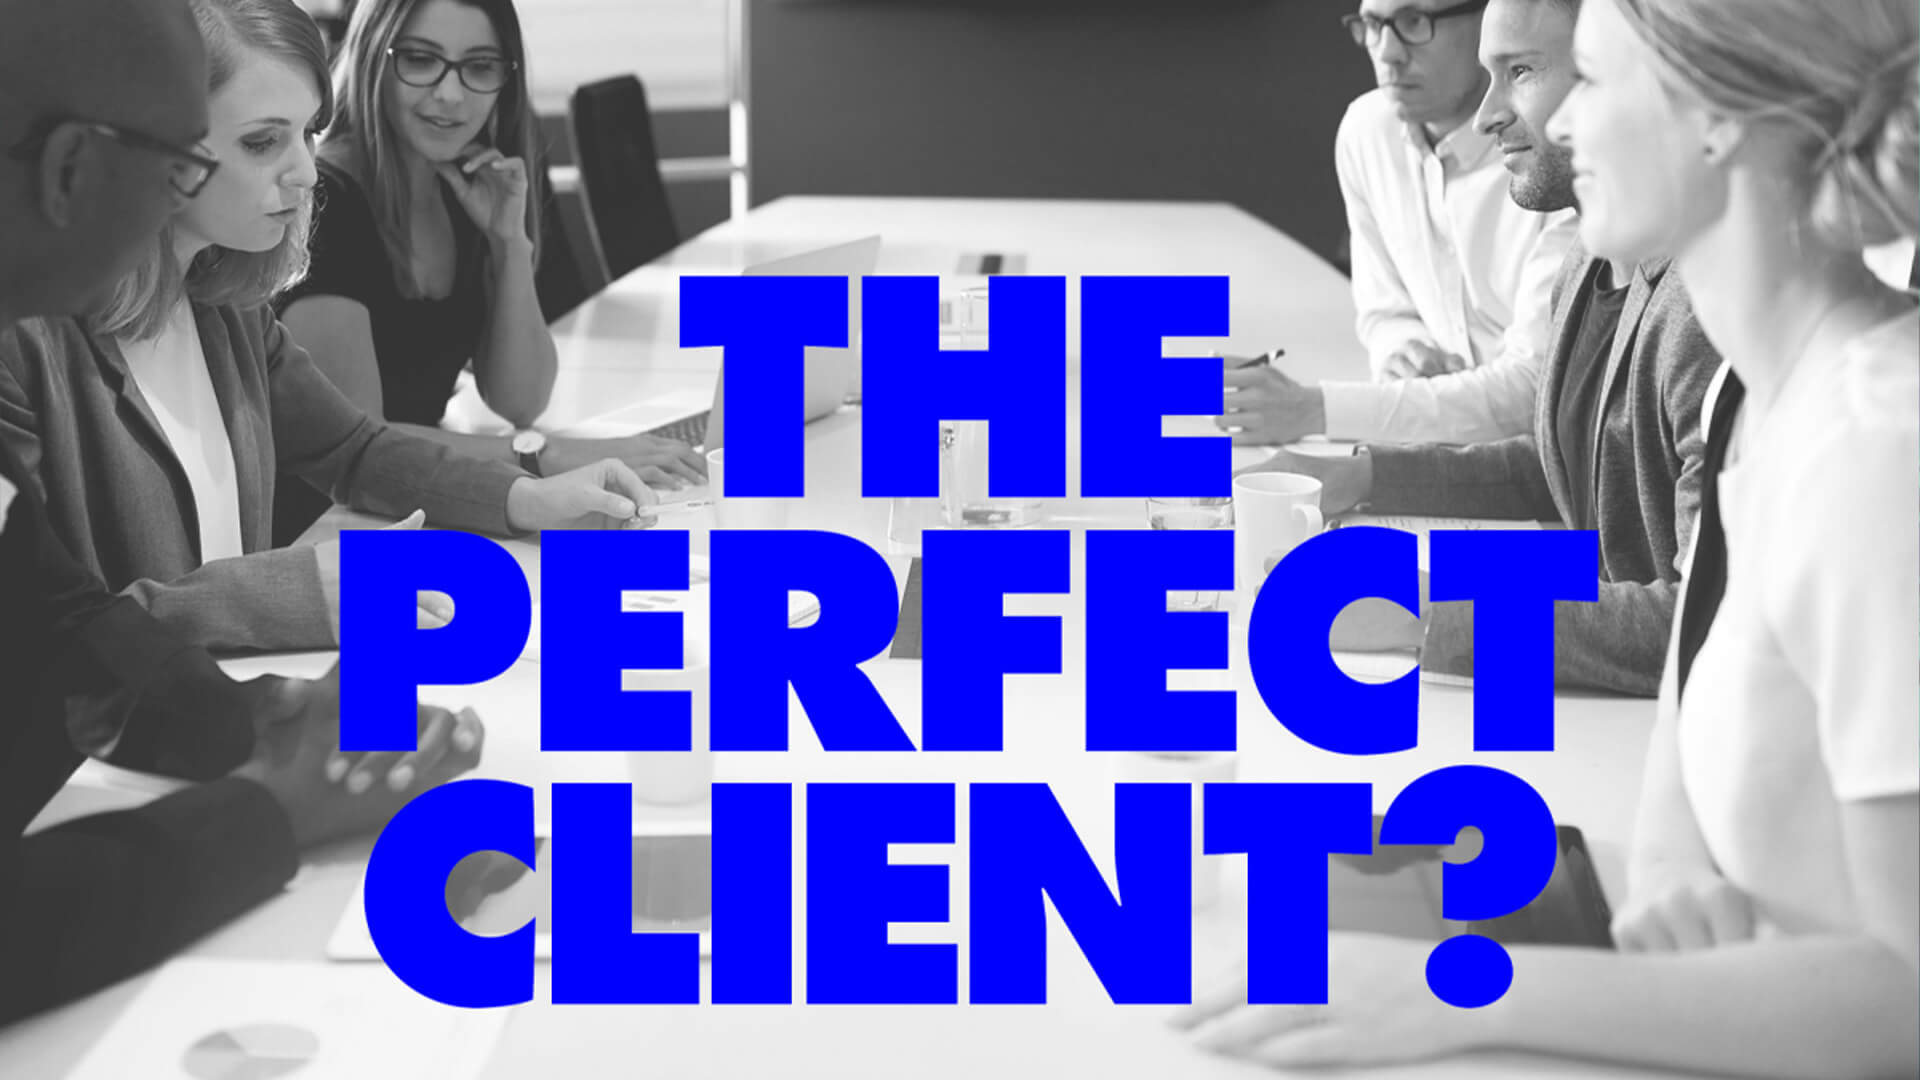 Meeting a Client: 4 Profiles to Identify